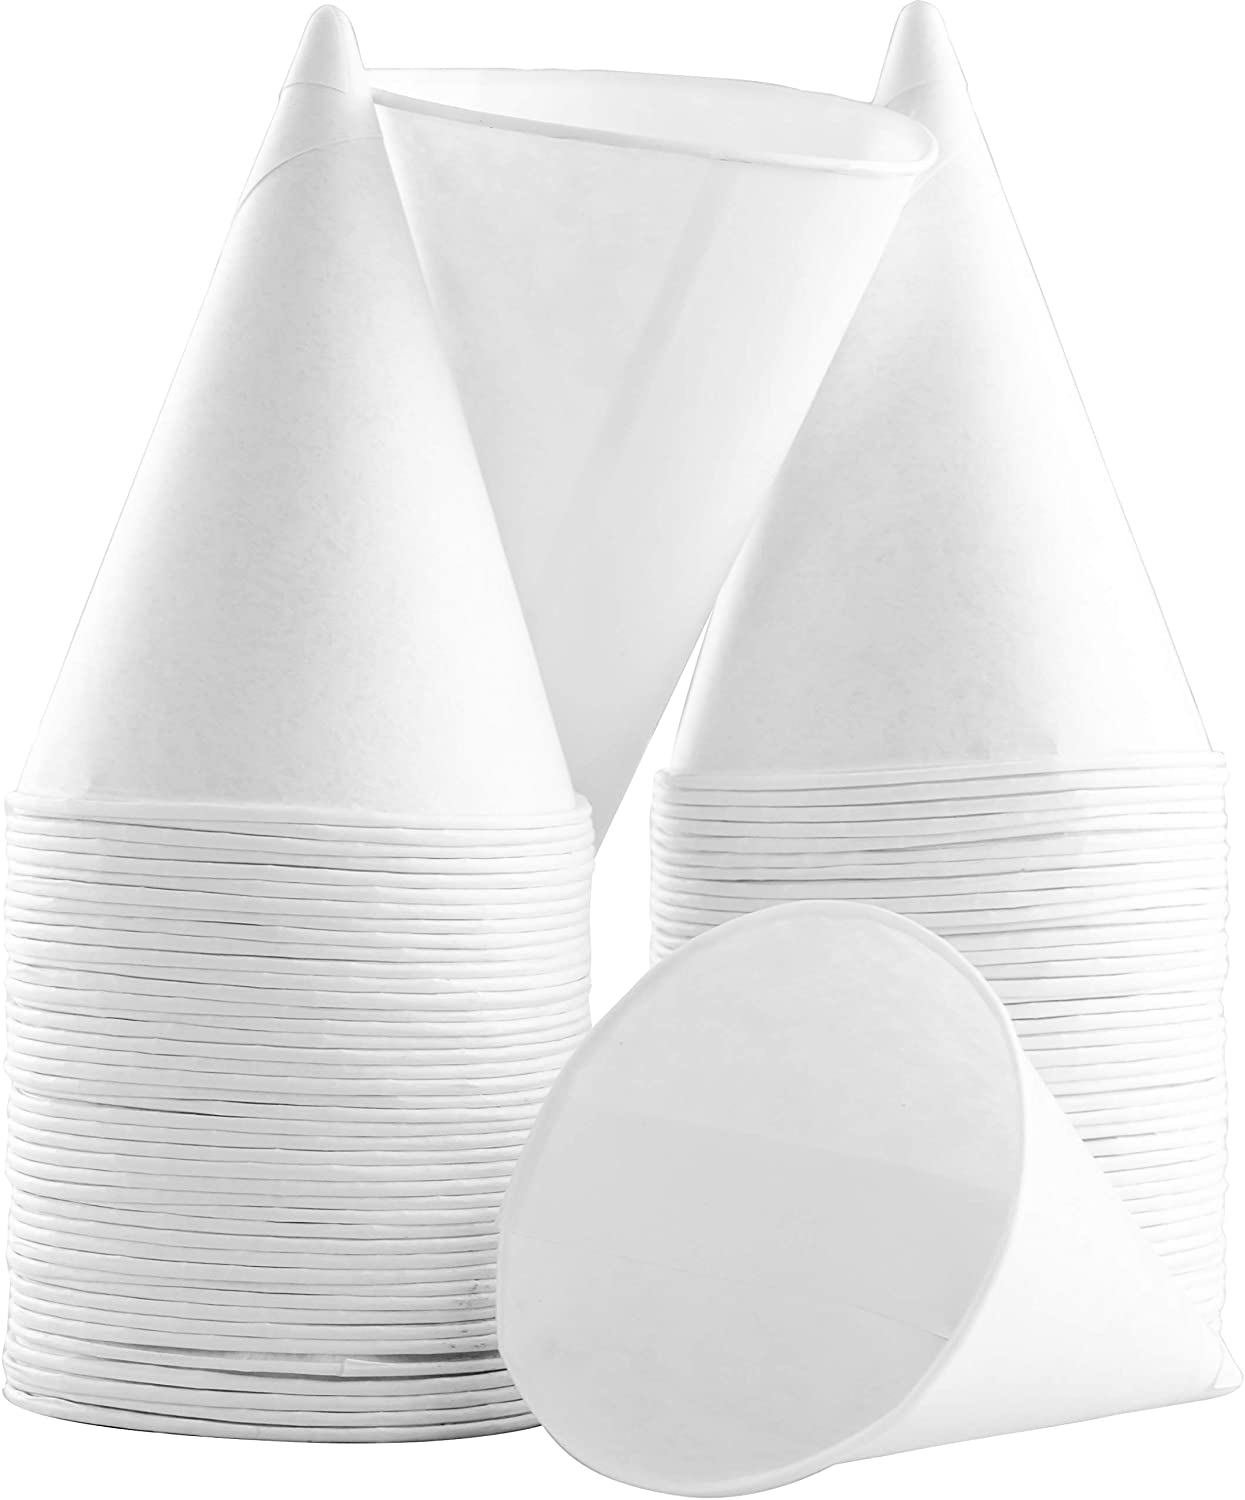 Eco-Friendly Small White Paper Cone Cups 50Pk. Wax Free Dispenser Cups for Shaved Ice, Office Water Coolers, Sports Teams or Fundraisers. Disposable Cone Craft Funnels for Oil or Protein Powder Drinks